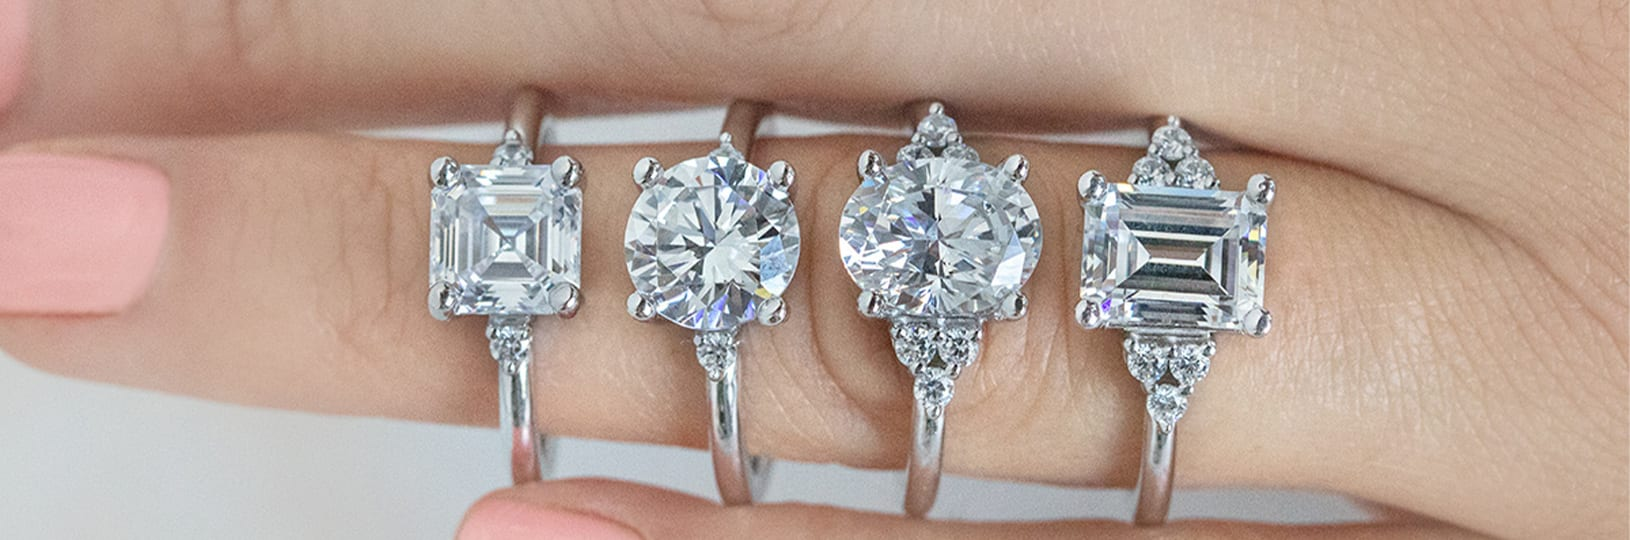 Four different diamond shapes compared side-by-side